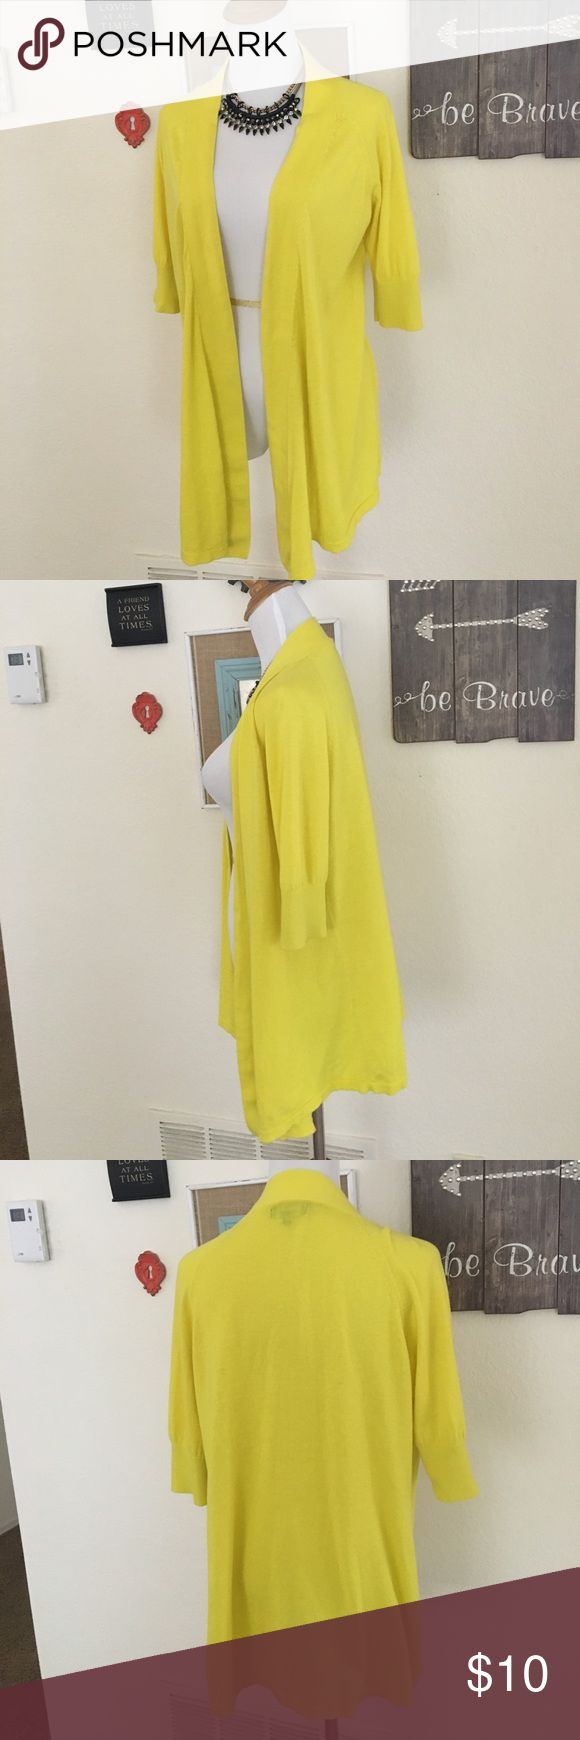 Express neon yellow cardigan 3/4 sleeve neon yellow open front cardigan. 100% cotton. Looks great with black or white outfits. Perfect addition when needing that extra pop of color. Lightweight material for year round wear. Express Sweaters Cardigans